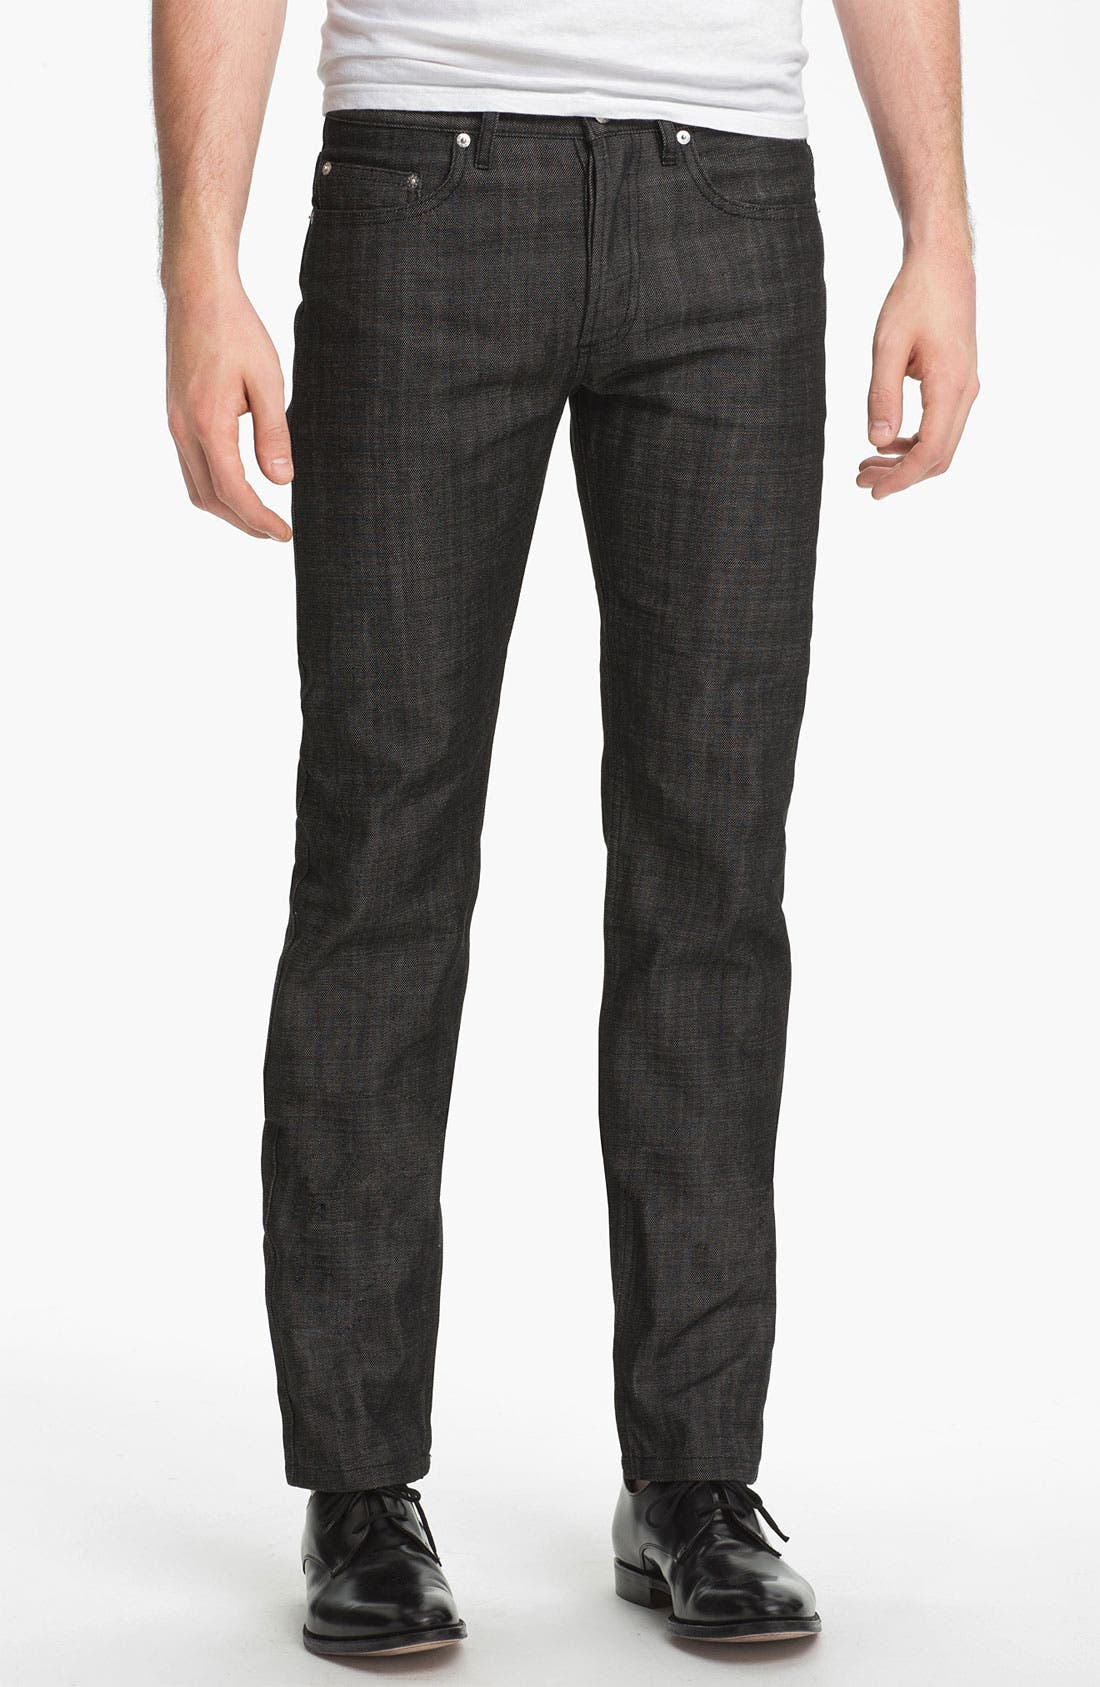 Alternate Image 1 Selected - A.P.C. 'New Standard' Slim Straight Leg Jeans (Black) (Online Only)